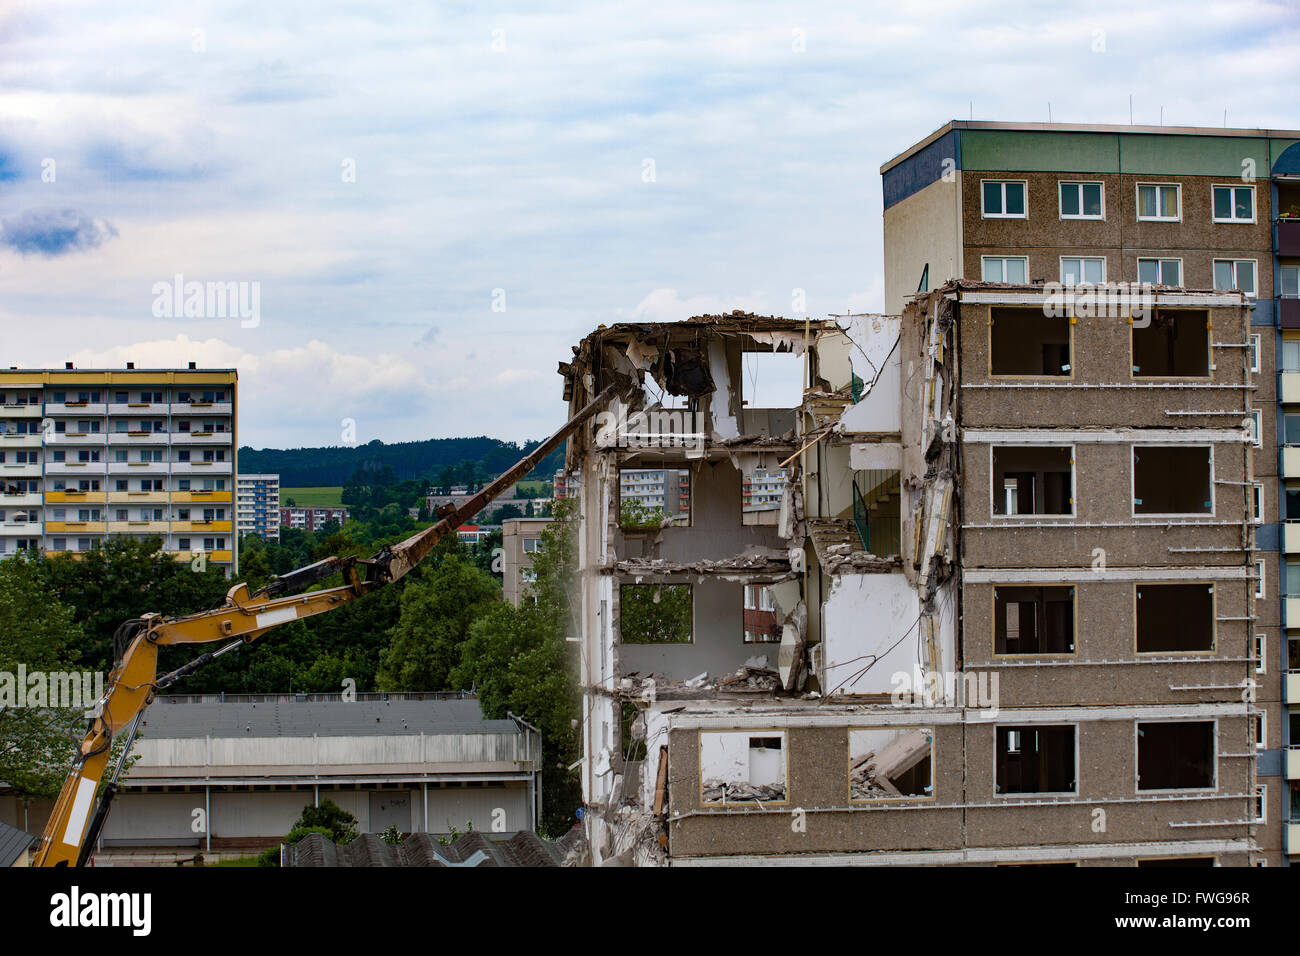 Apartments being demolished. - Stock Image